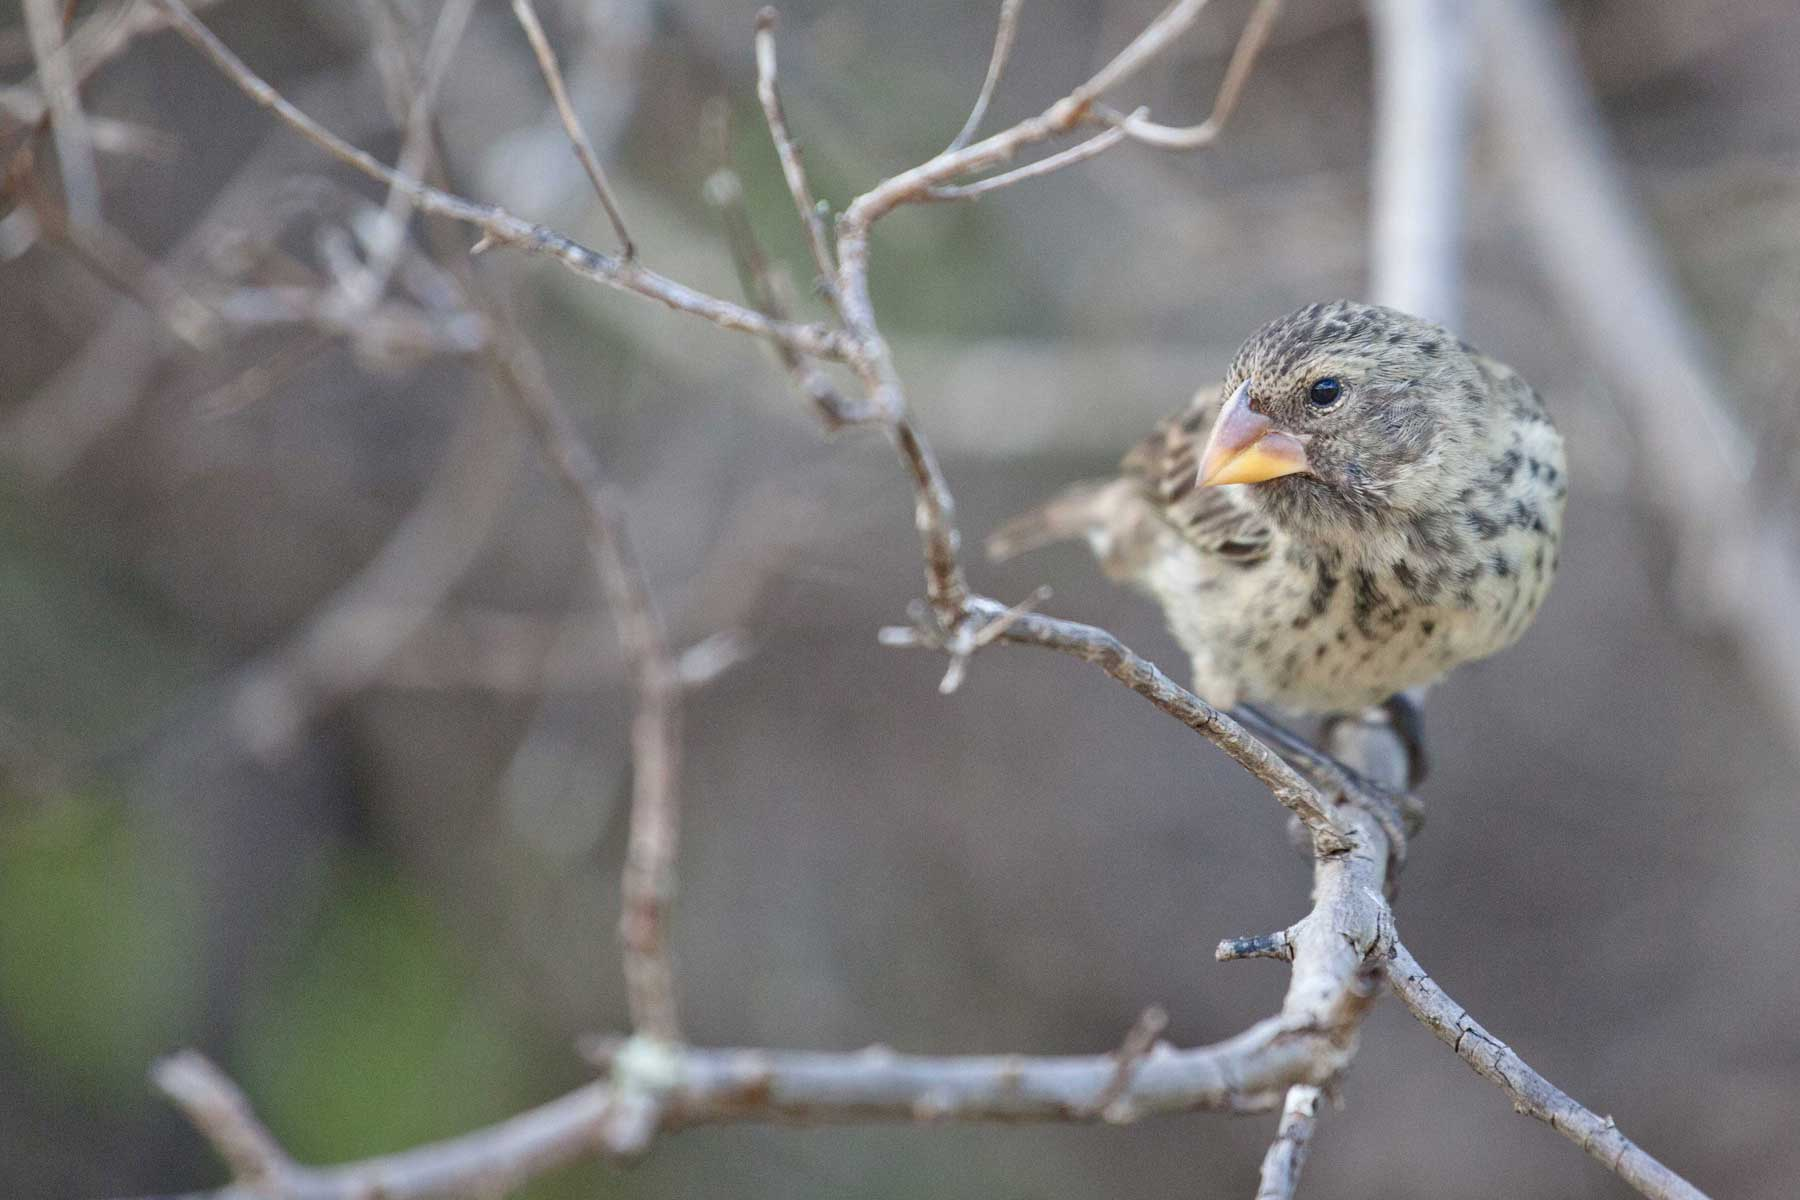 What could we tell Darwin about his finches today?